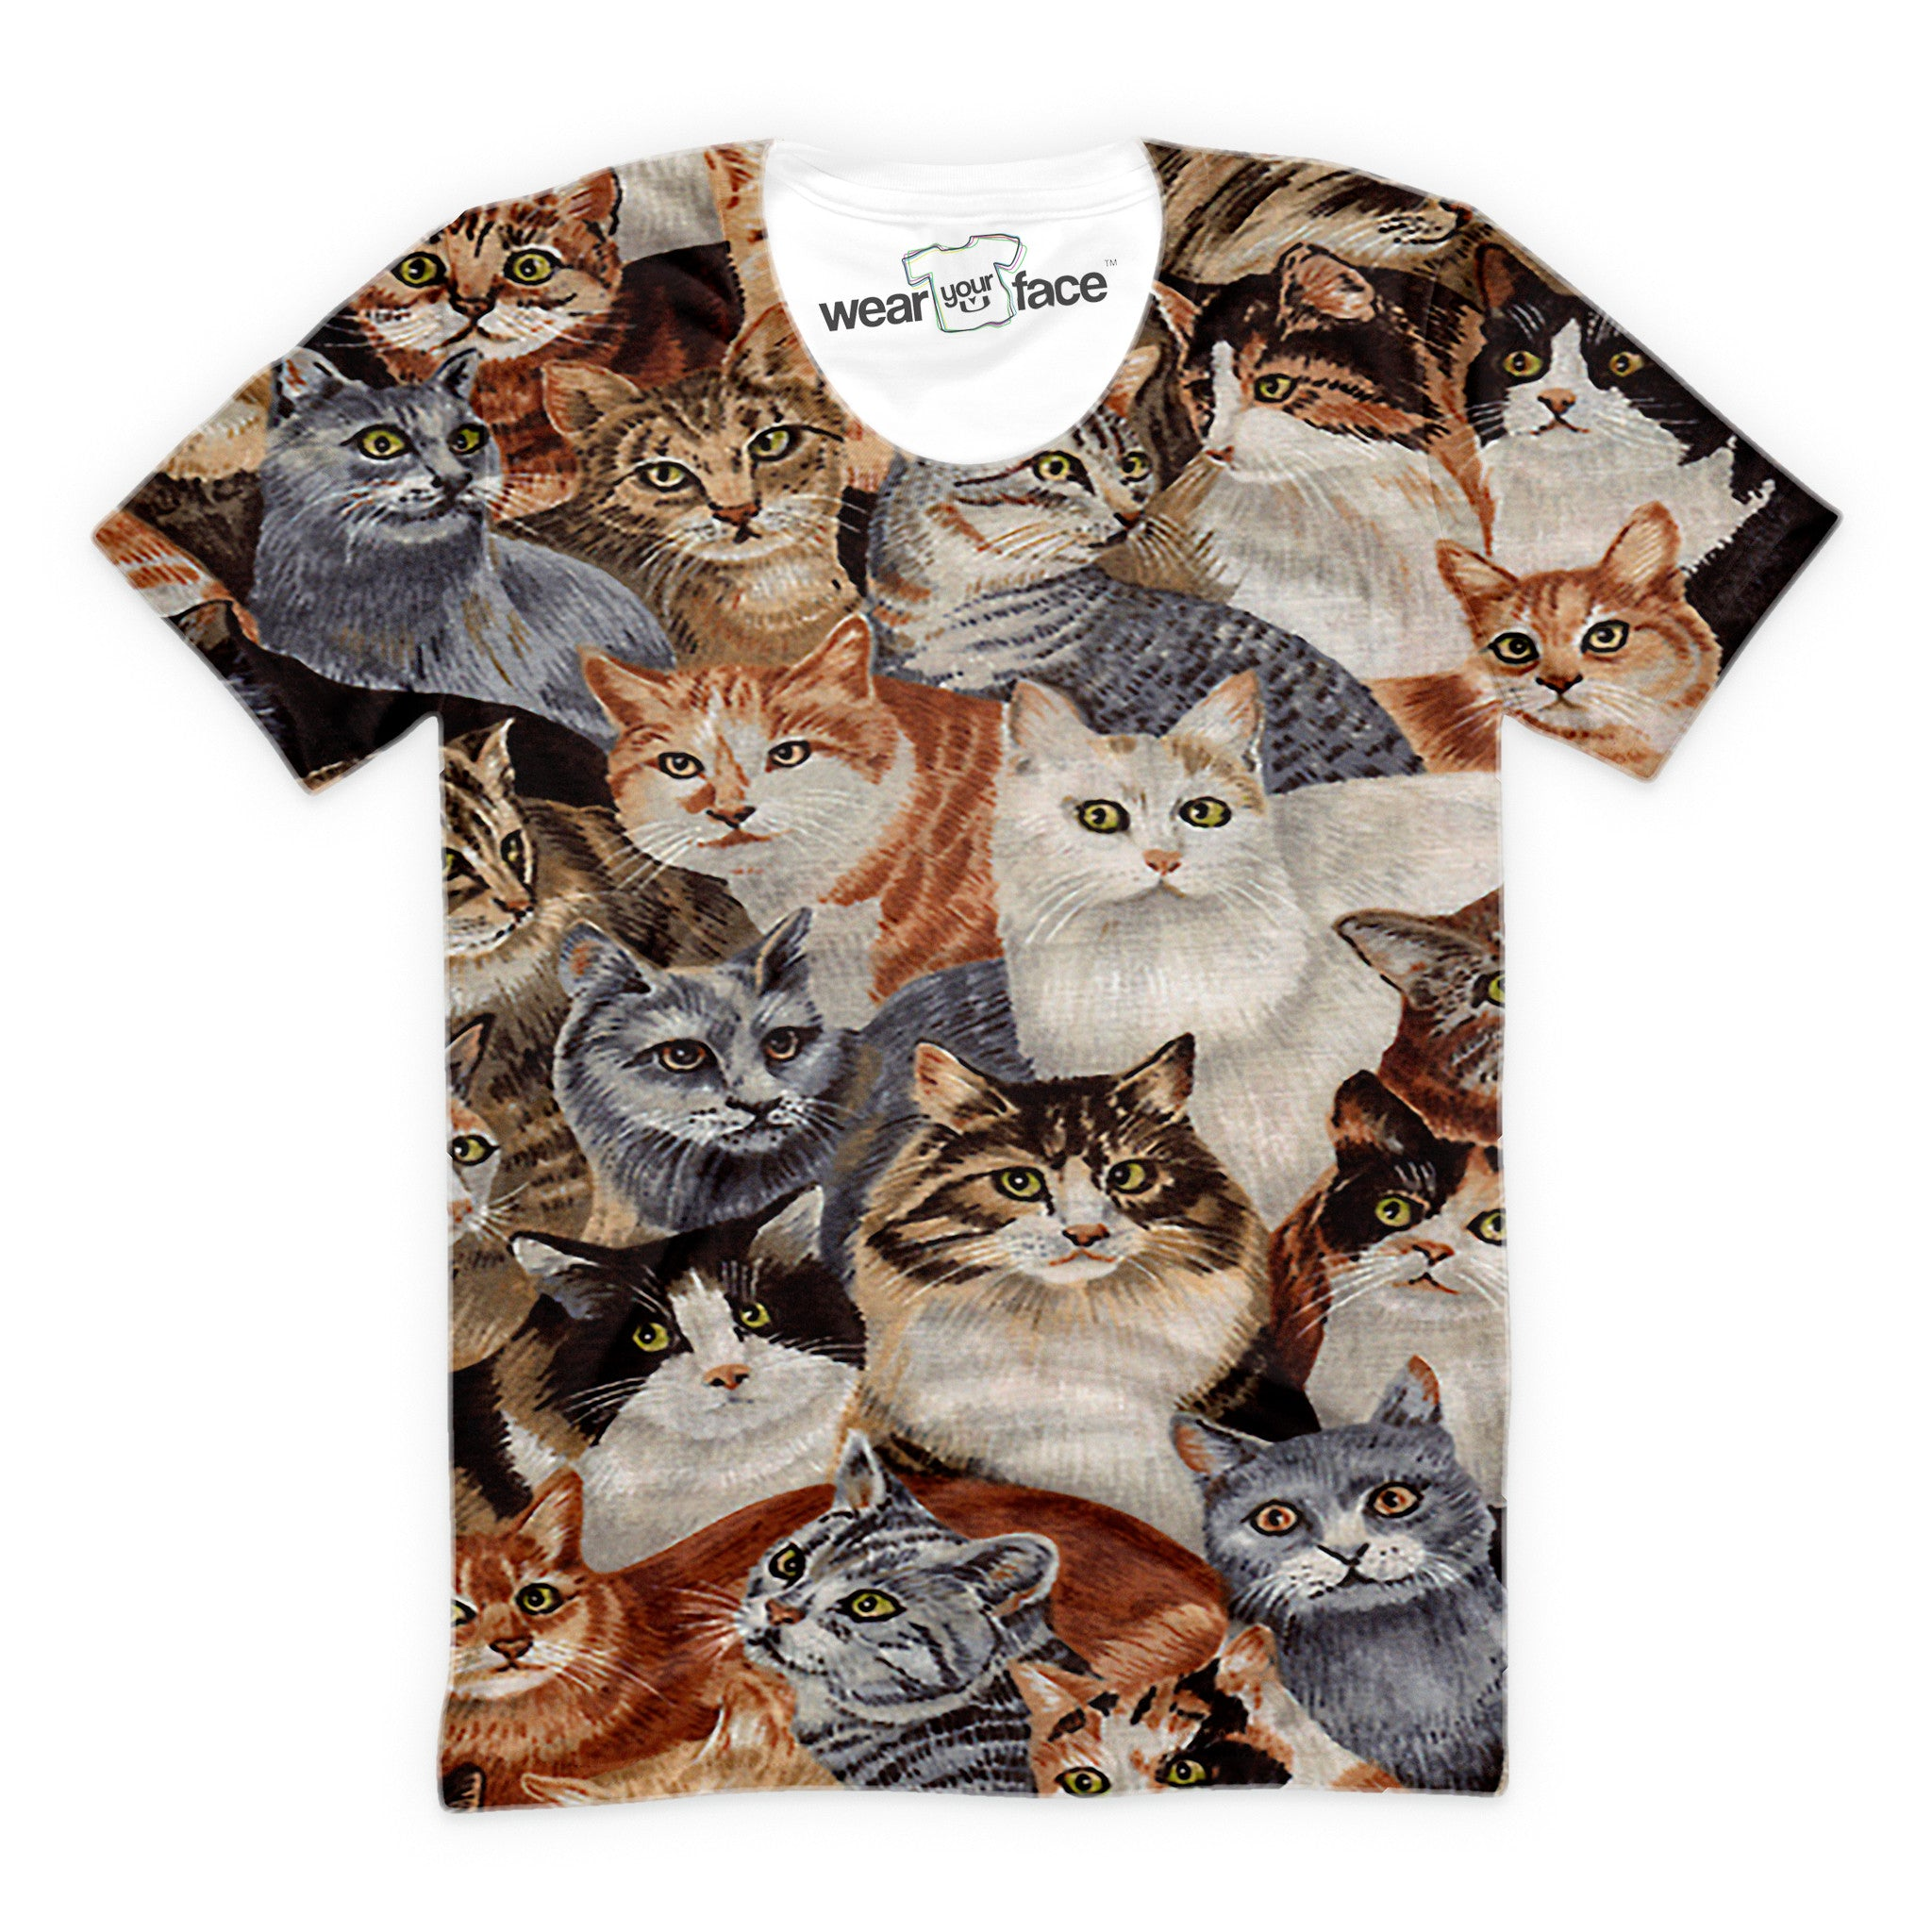 Too Many Cats T-Shirt